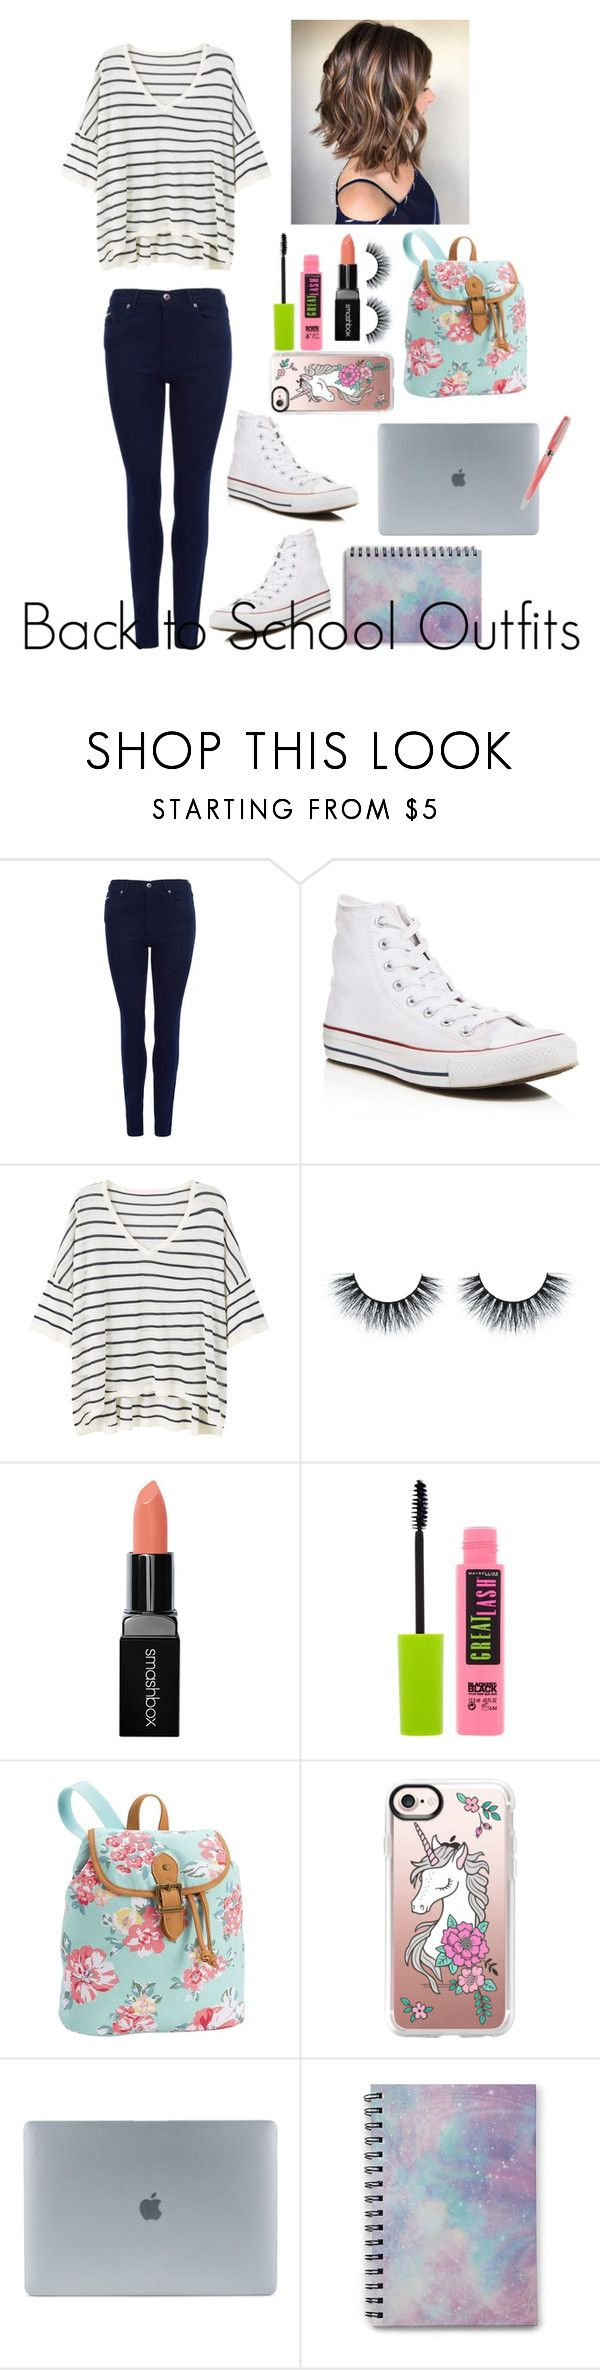 """""""Back to School Outfits #4"""" by gussied-up ❤ liked on Polyvore featuring Barbour International, Converse, MANGO, Smashbox, Maybelline, PBteen, Casetify, Incase, Forever 21 and Montegrappa"""